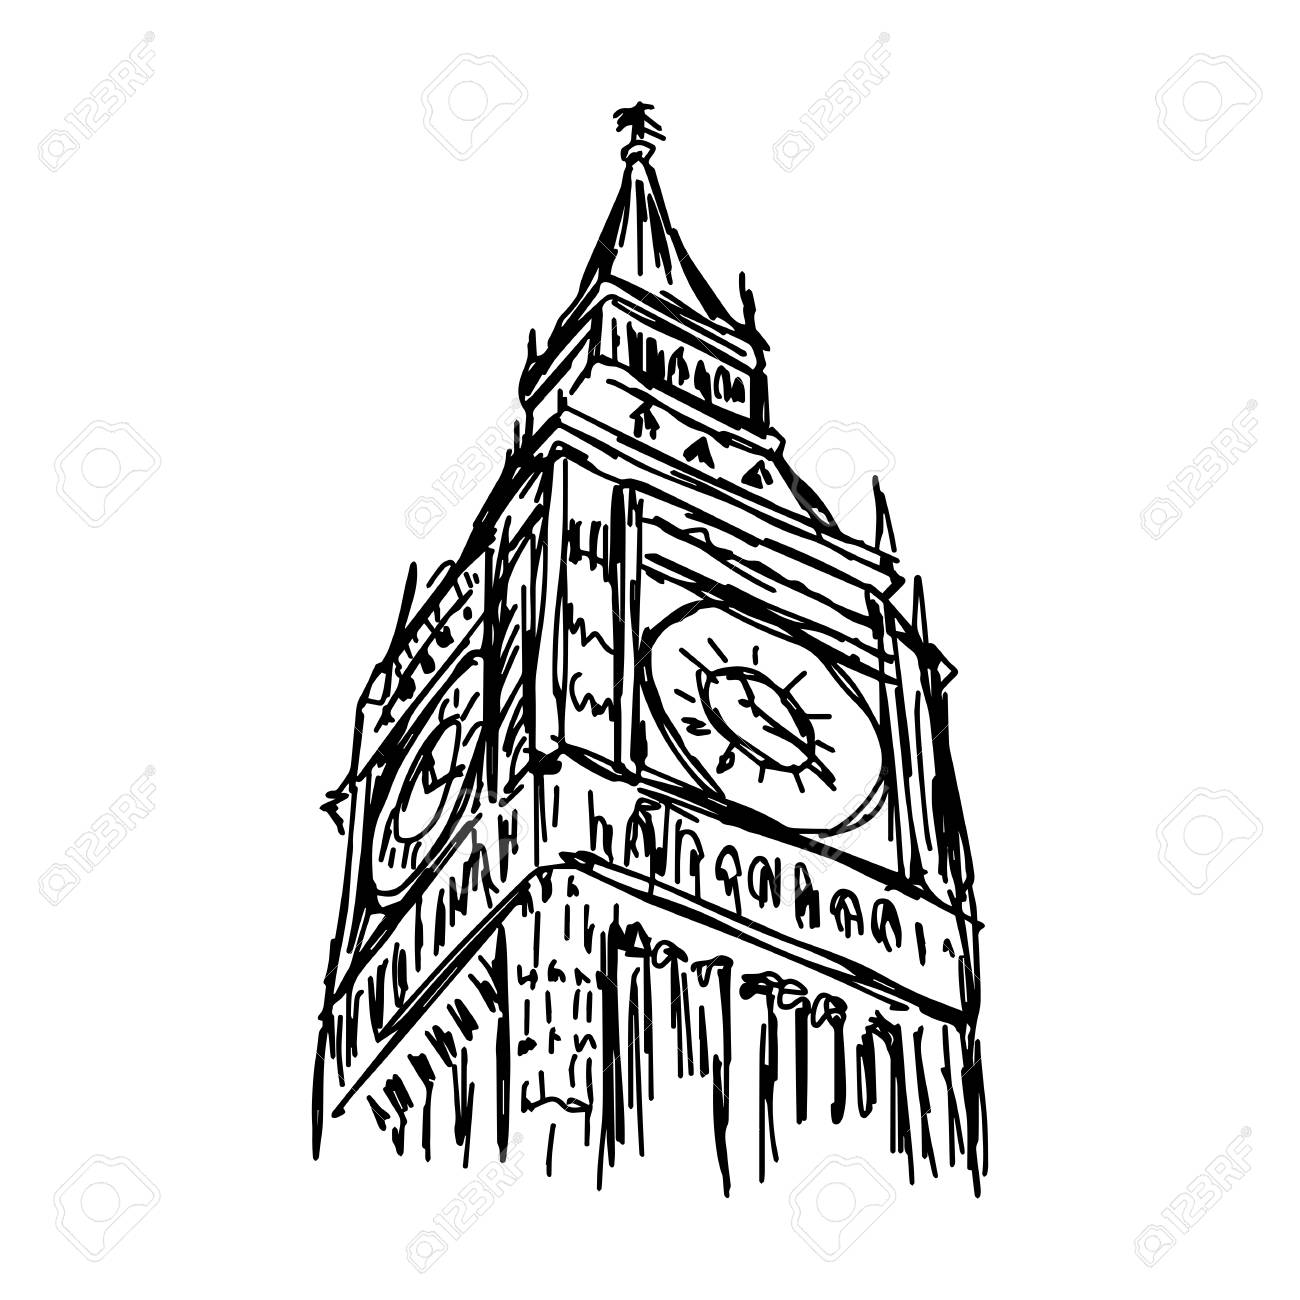 1300x1300 923 Big Ben Sketch Stock Illustrations, Cliparts And Royalty Free